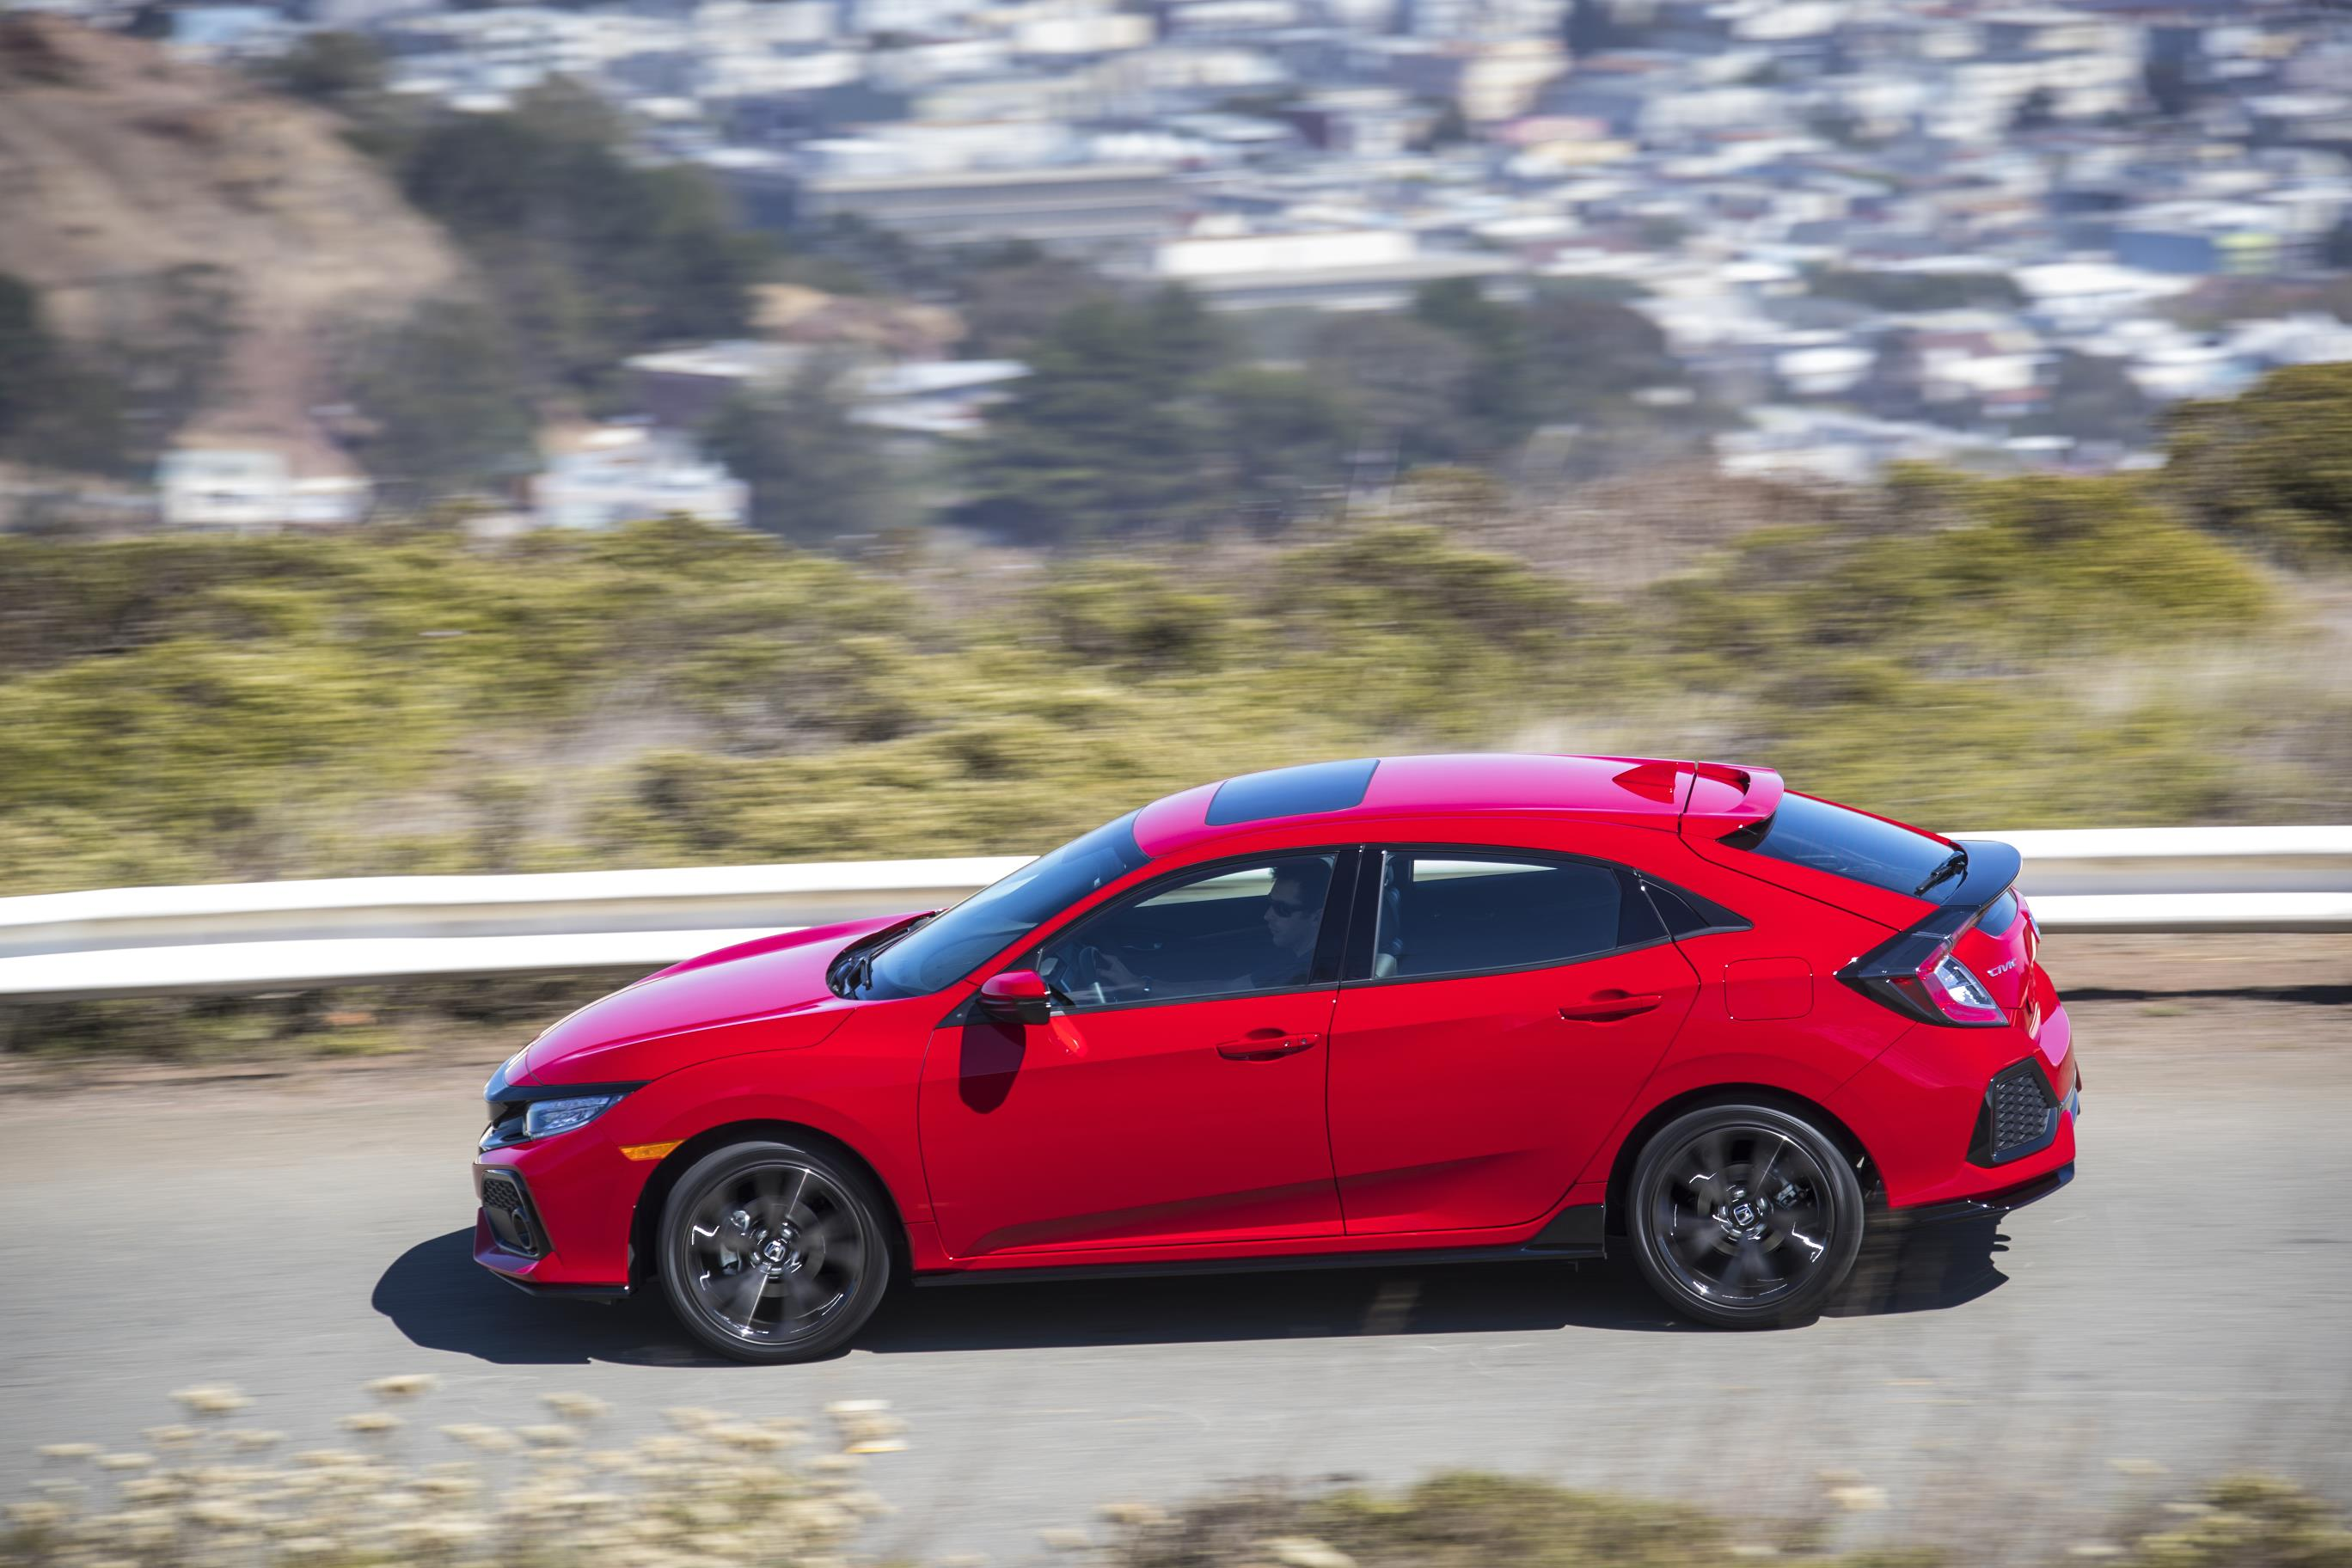 2017 Honda Civic Hatchback Arrives in America, Specs and ...